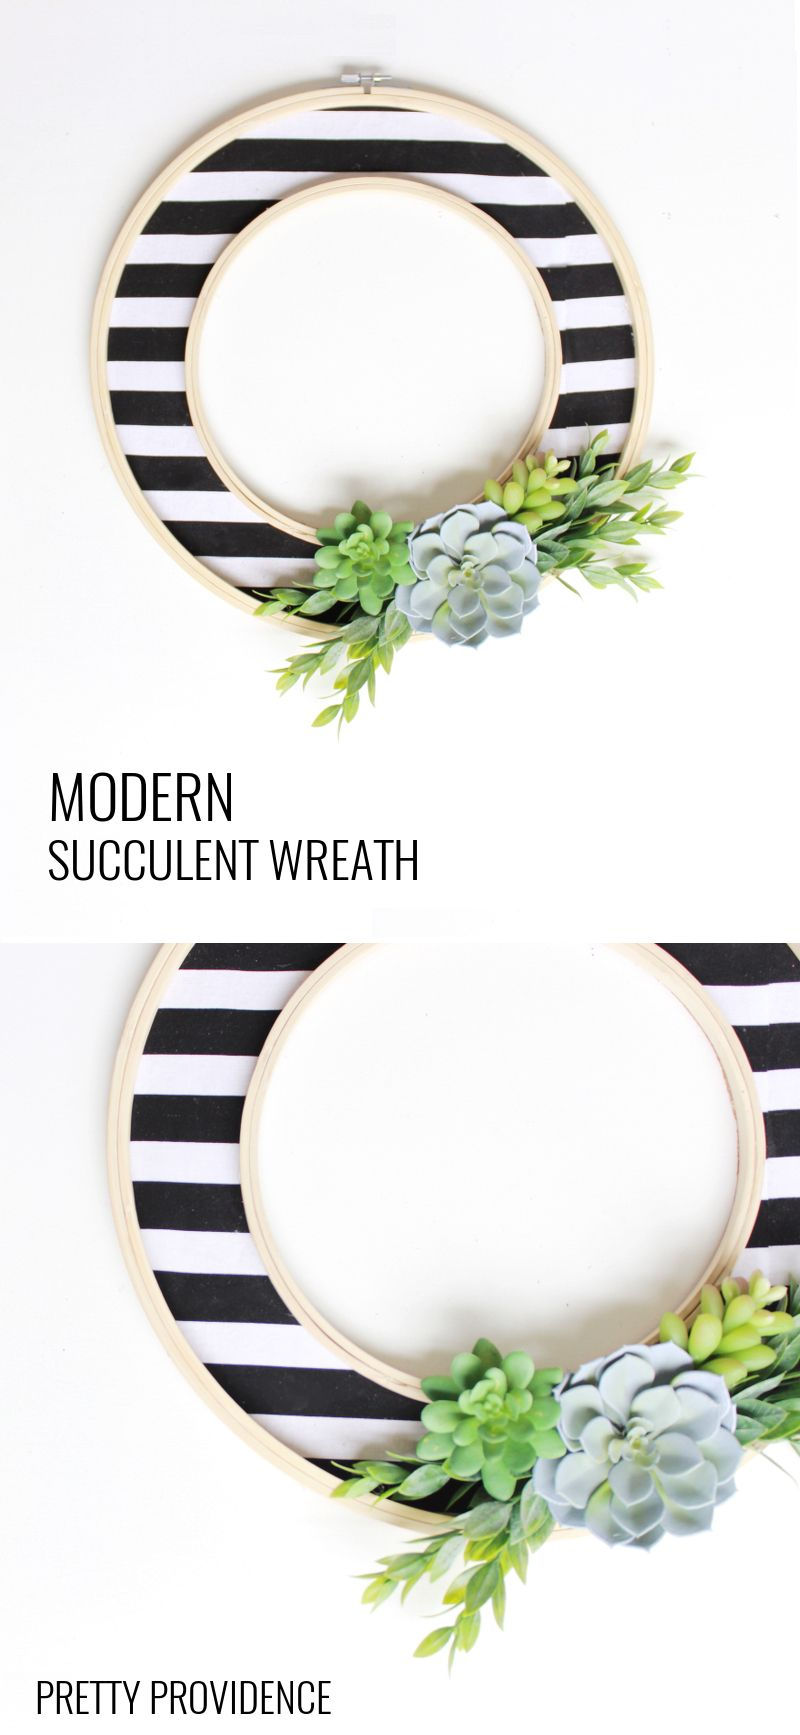 modern succulent wreath diy deko pinterest kr nze diy deko und t rkr nze. Black Bedroom Furniture Sets. Home Design Ideas